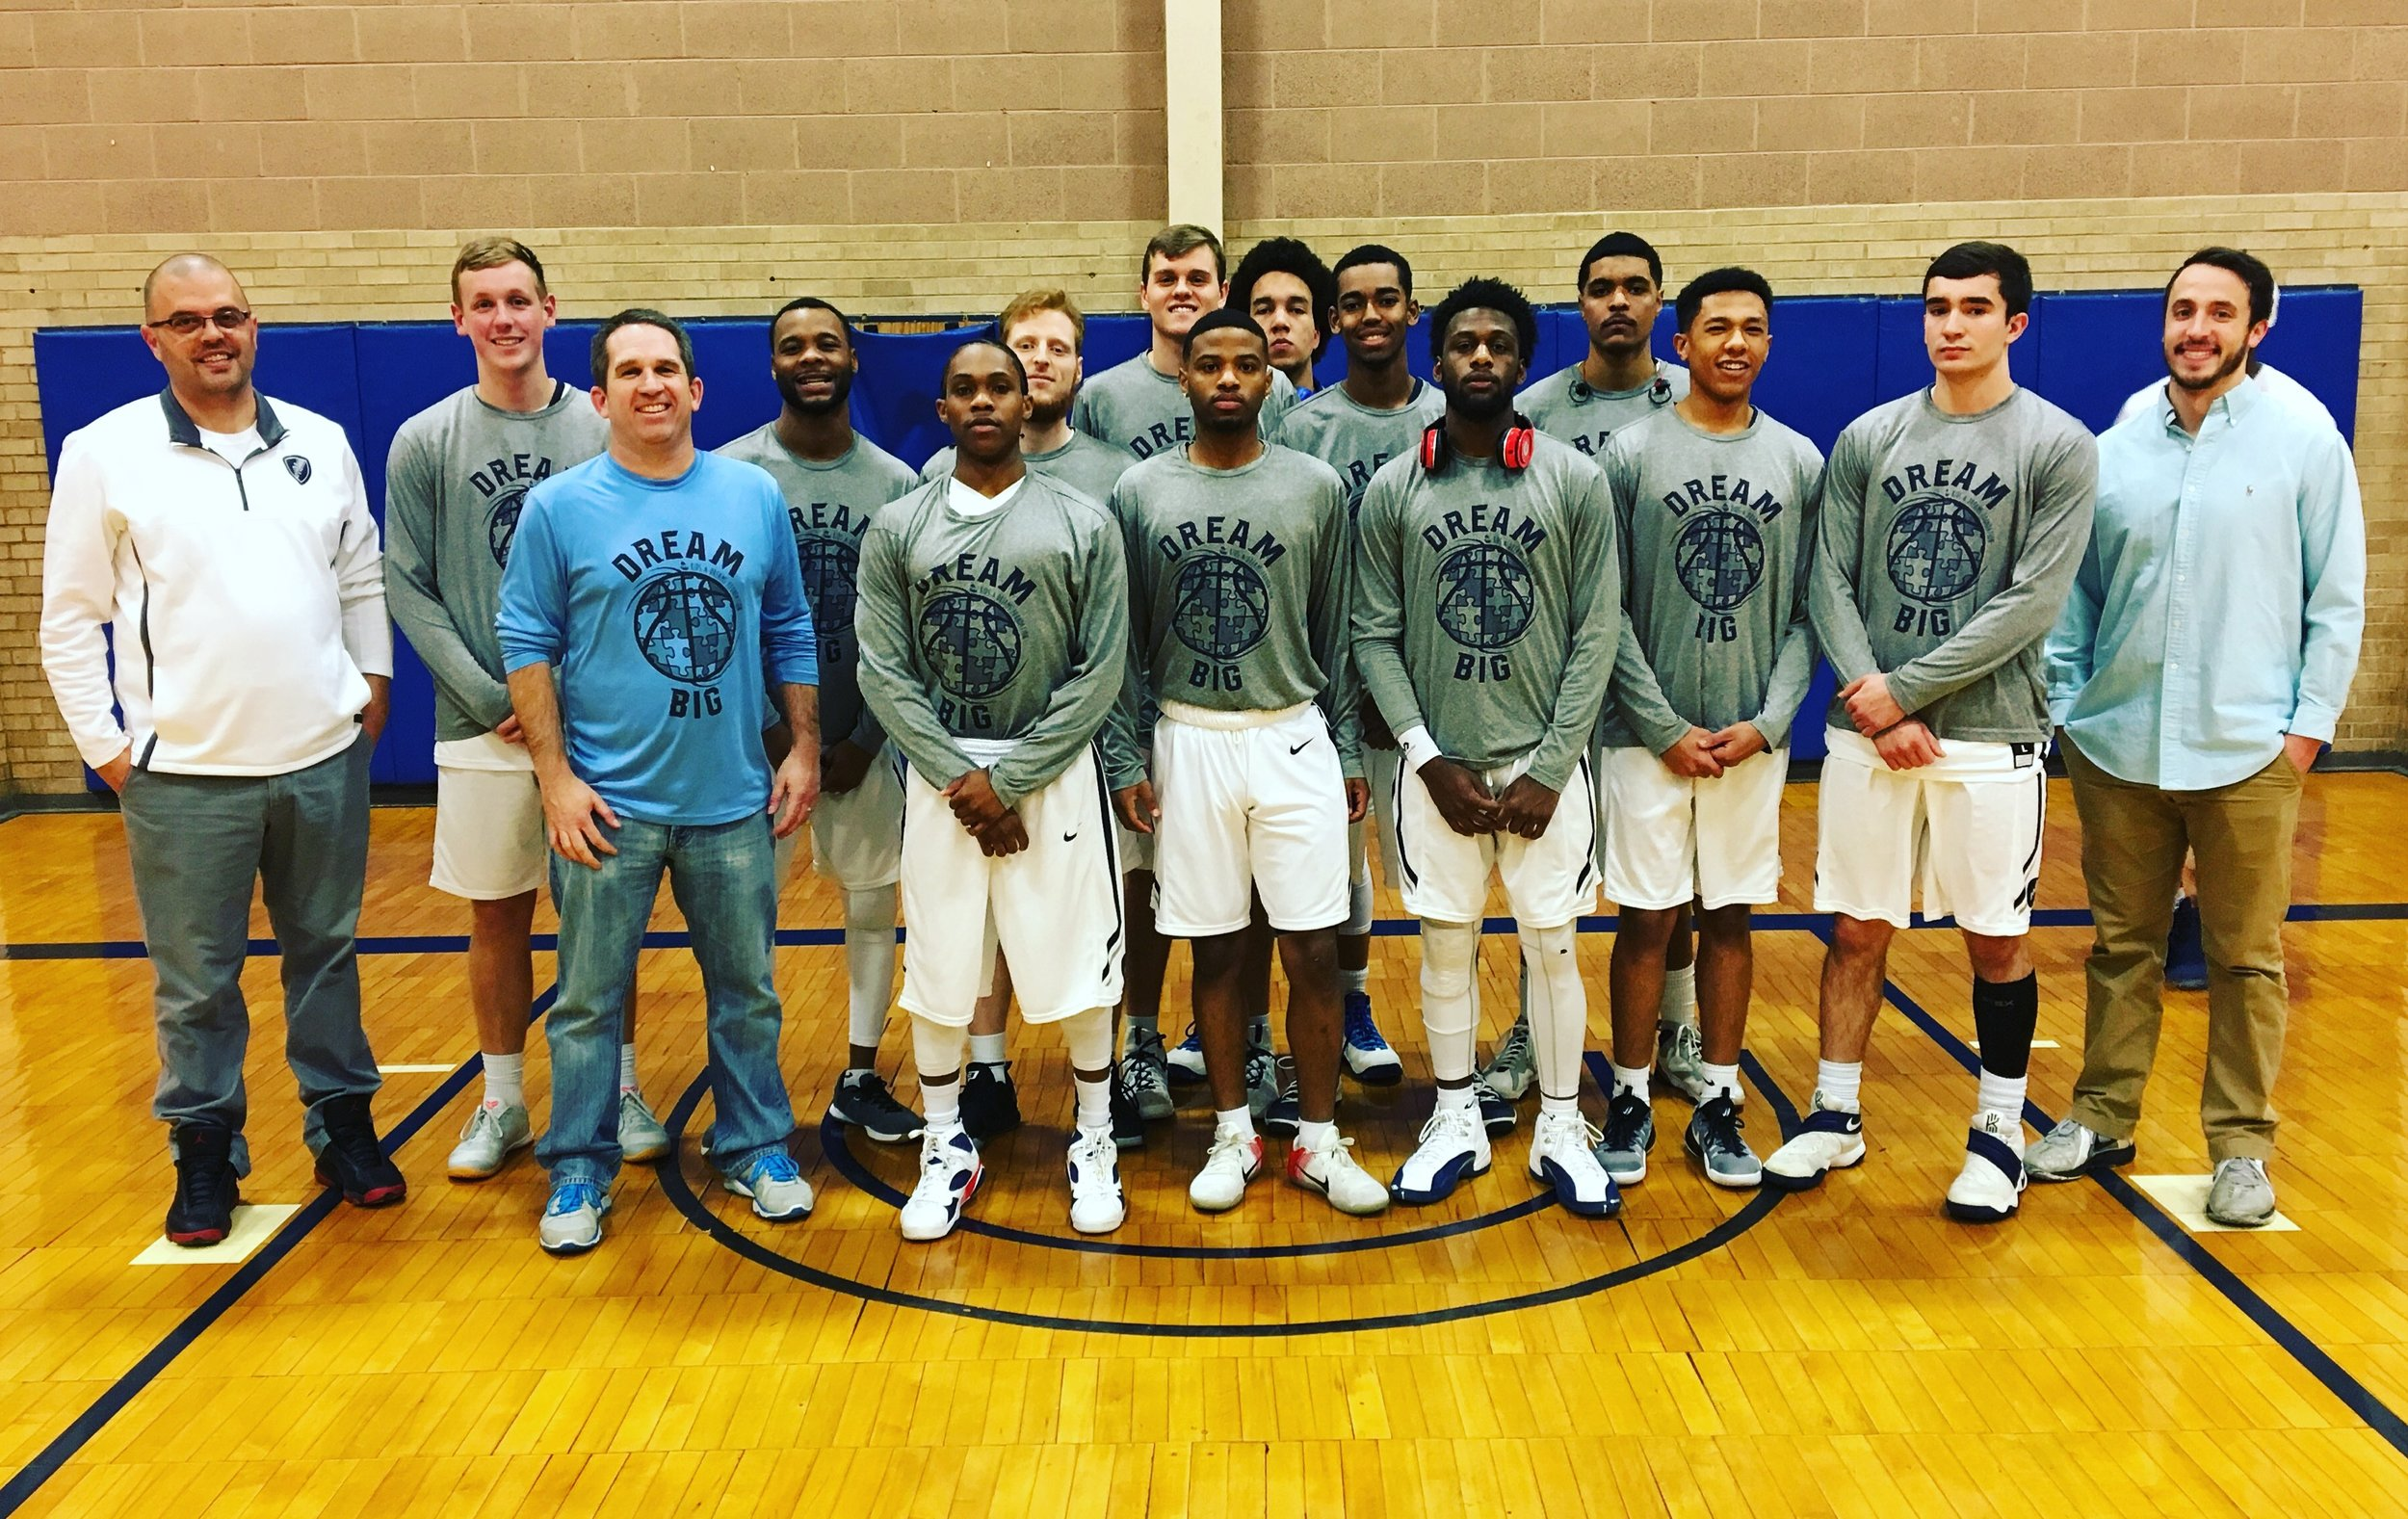 The Manhattan Christian College Thunder wore our shirts last year and had an awareness outing for us. It was a great night! Thanks so much to Coach Condra and his team for their support.